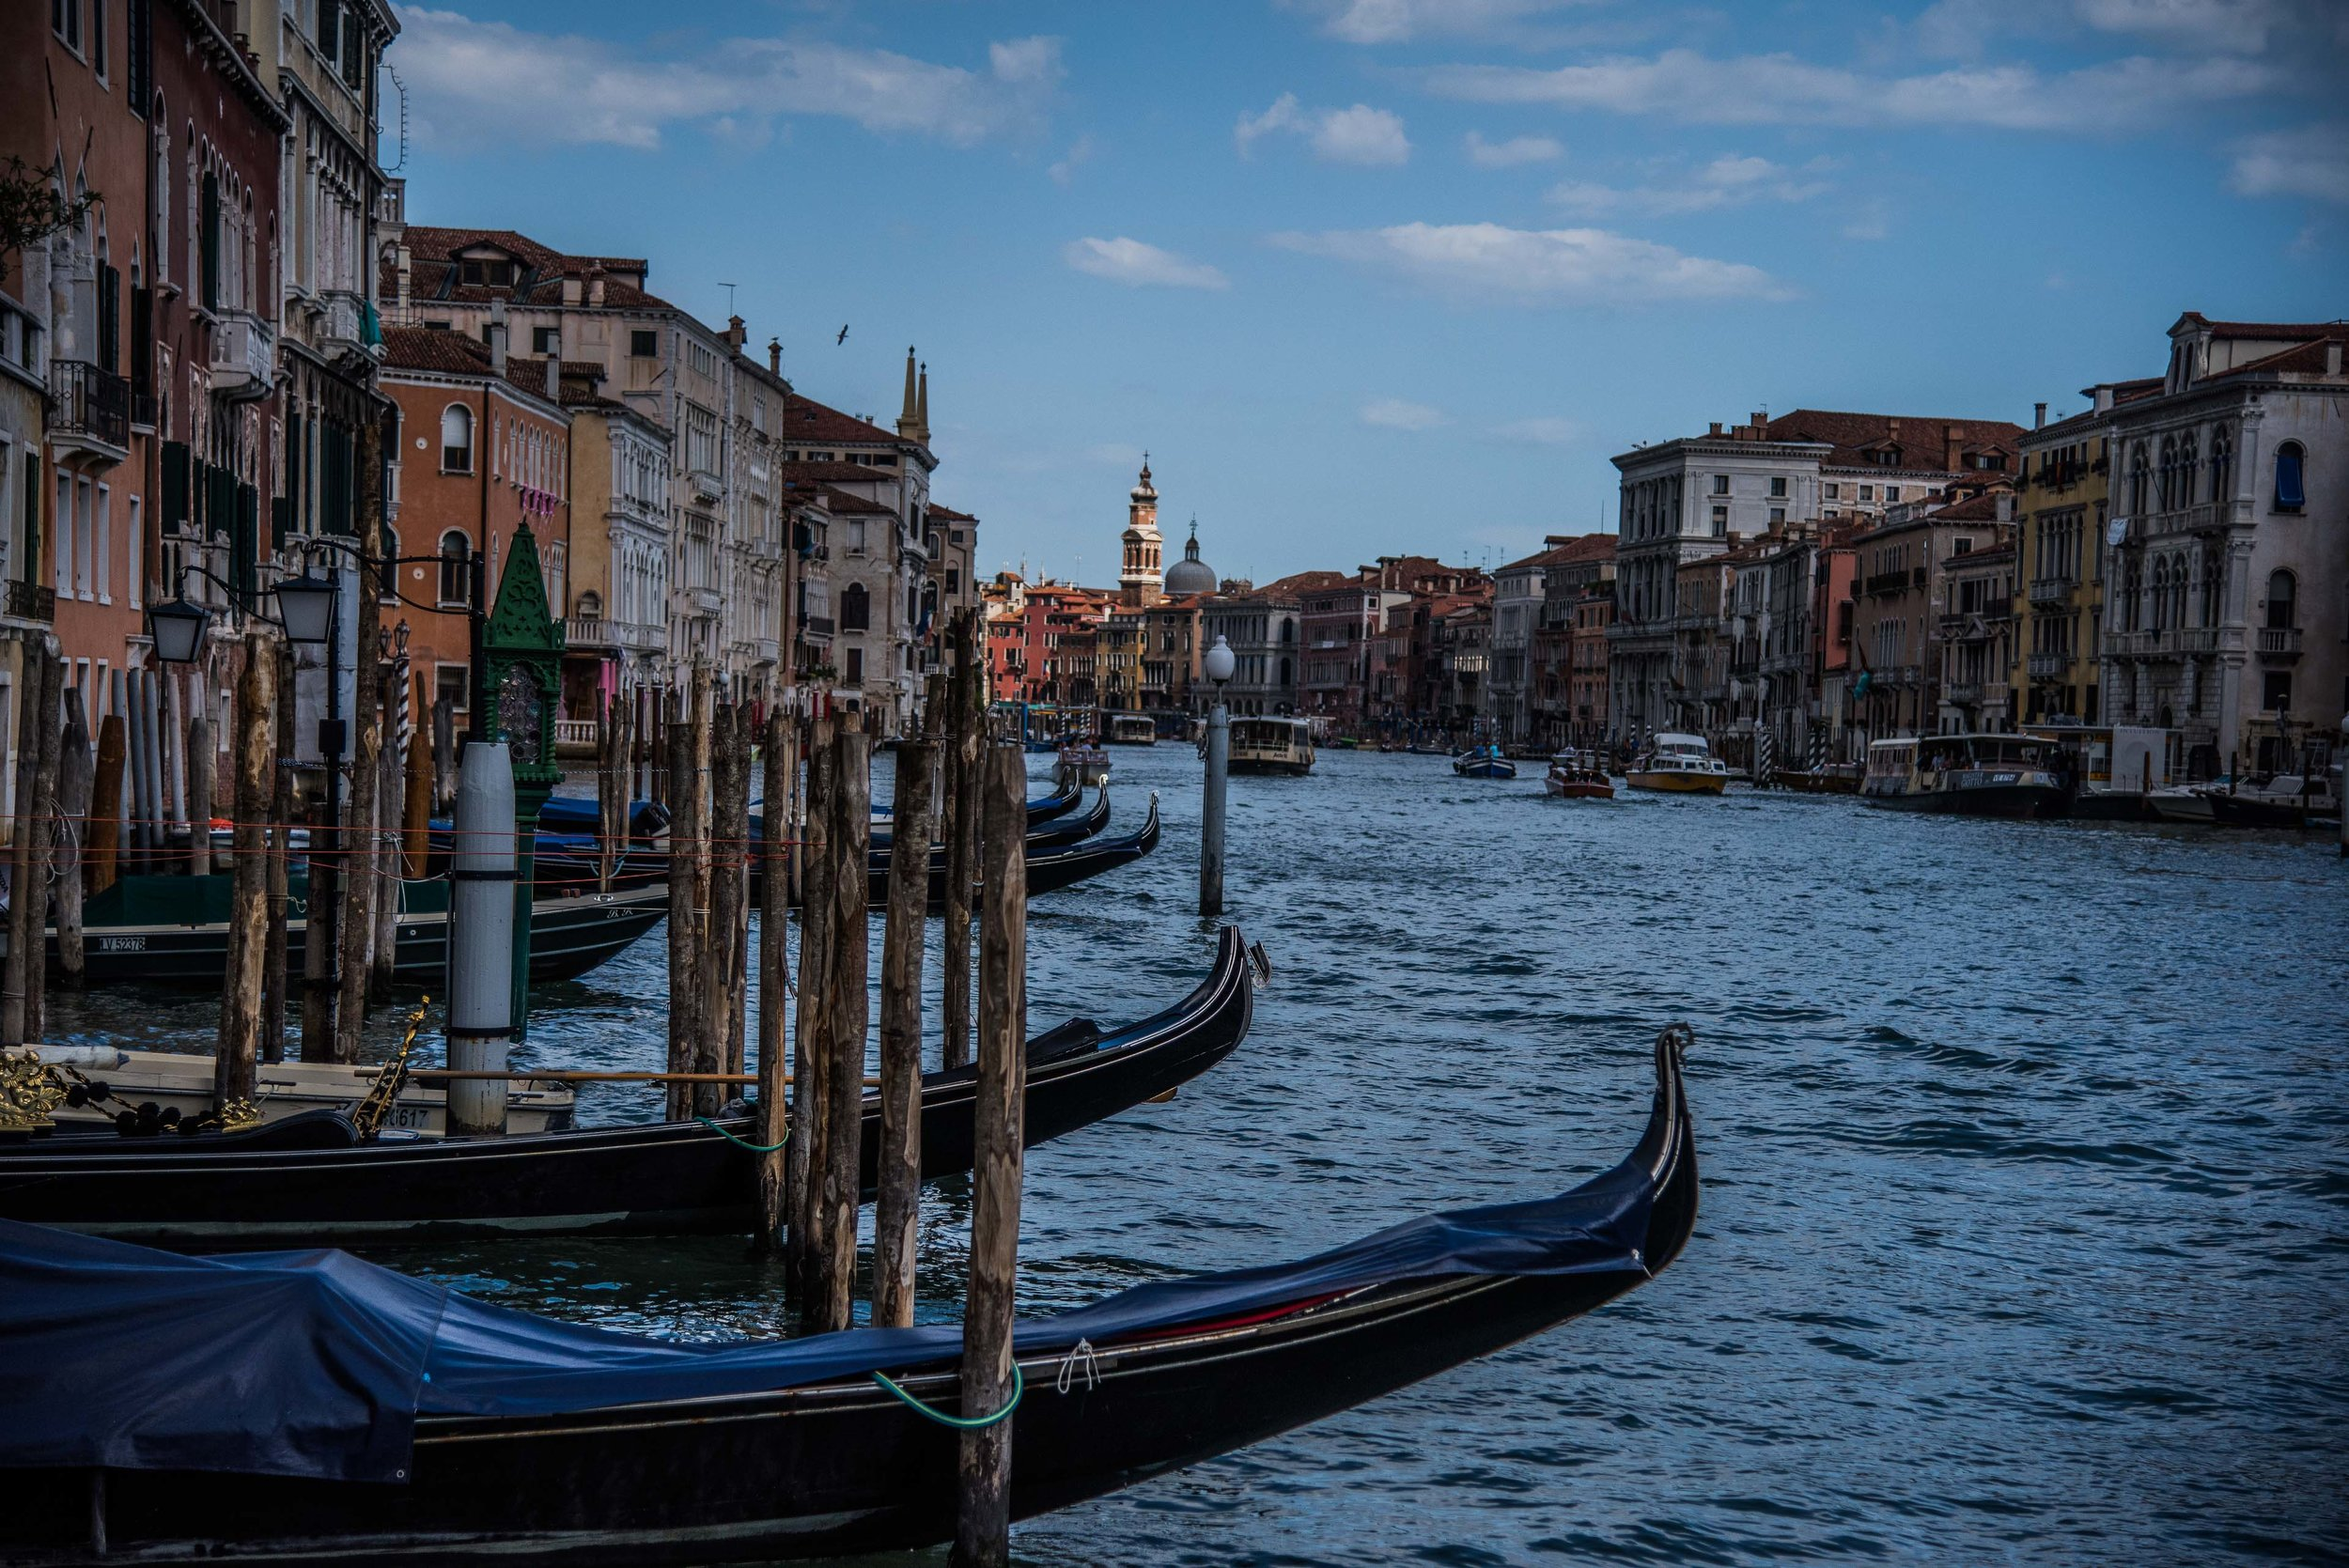 Grand Canal. Venice, Italy 2017